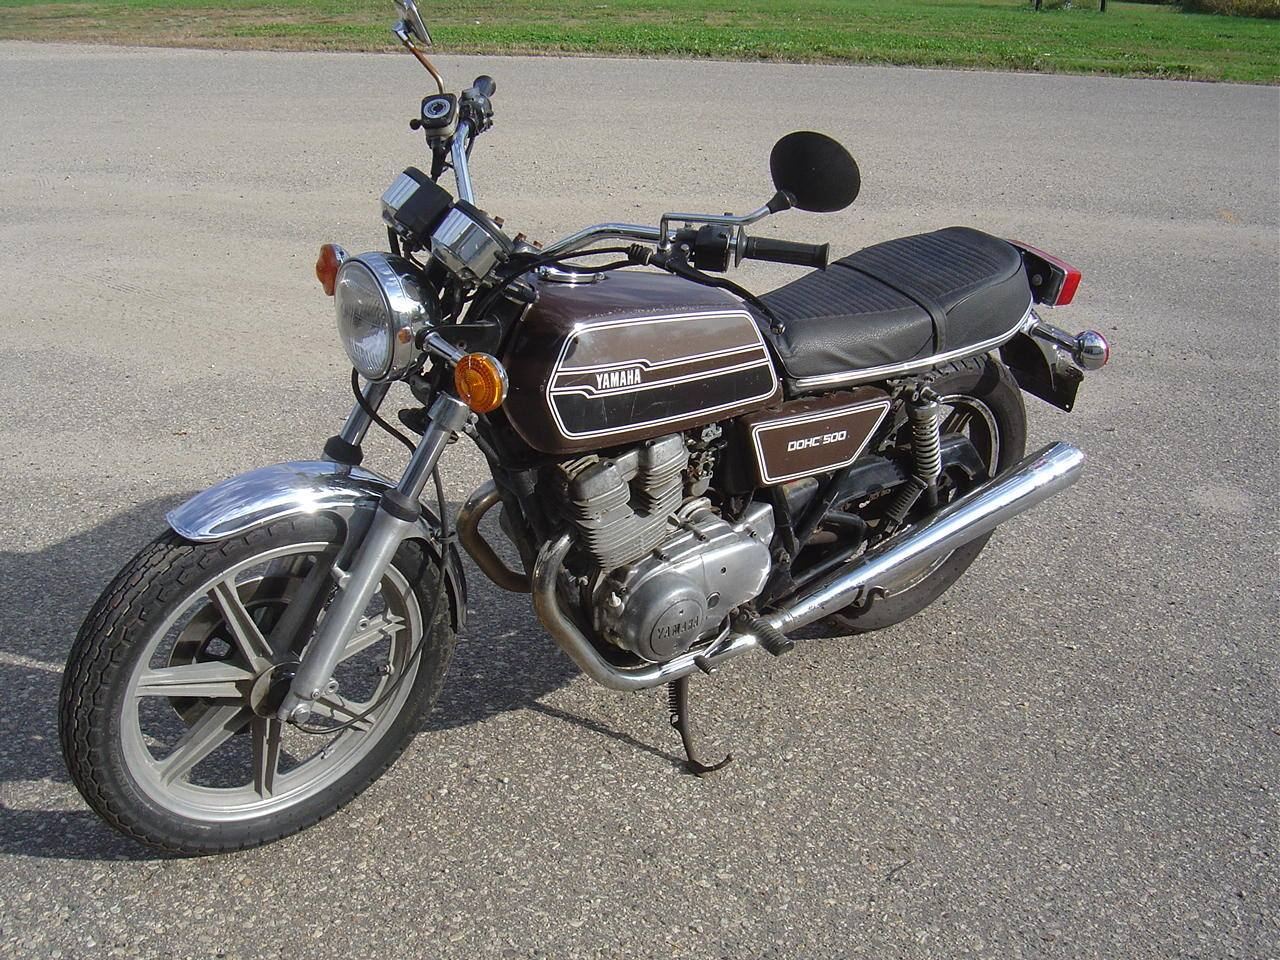 Xs650 75 Xs B 76 Xs C Wiring Diagram as well 181283515128 additionally Showthread likewise 77 Honda Cb750 Gaige Redd also Yam. on 76 yamaha xs500